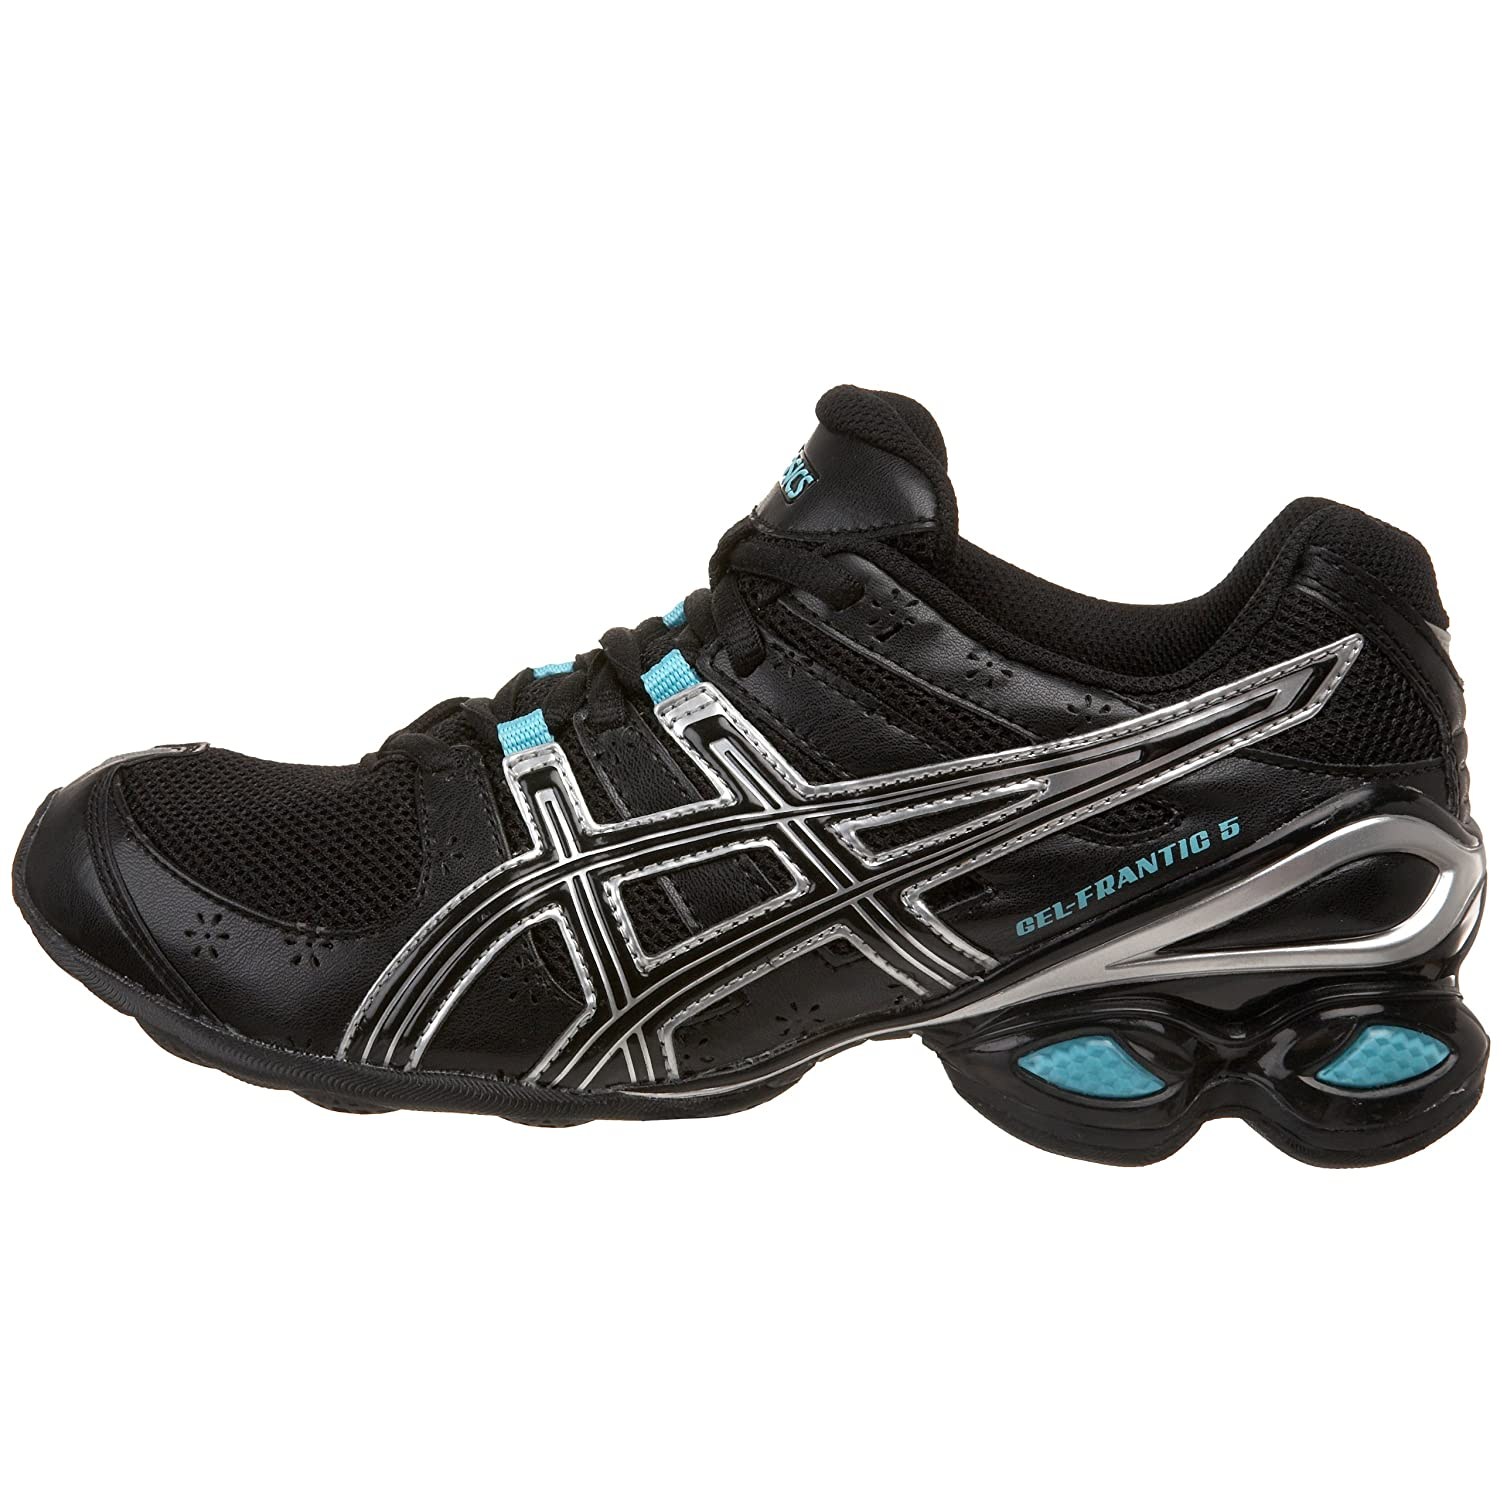 Asics Gel Frantic 5 Running Shoes Review